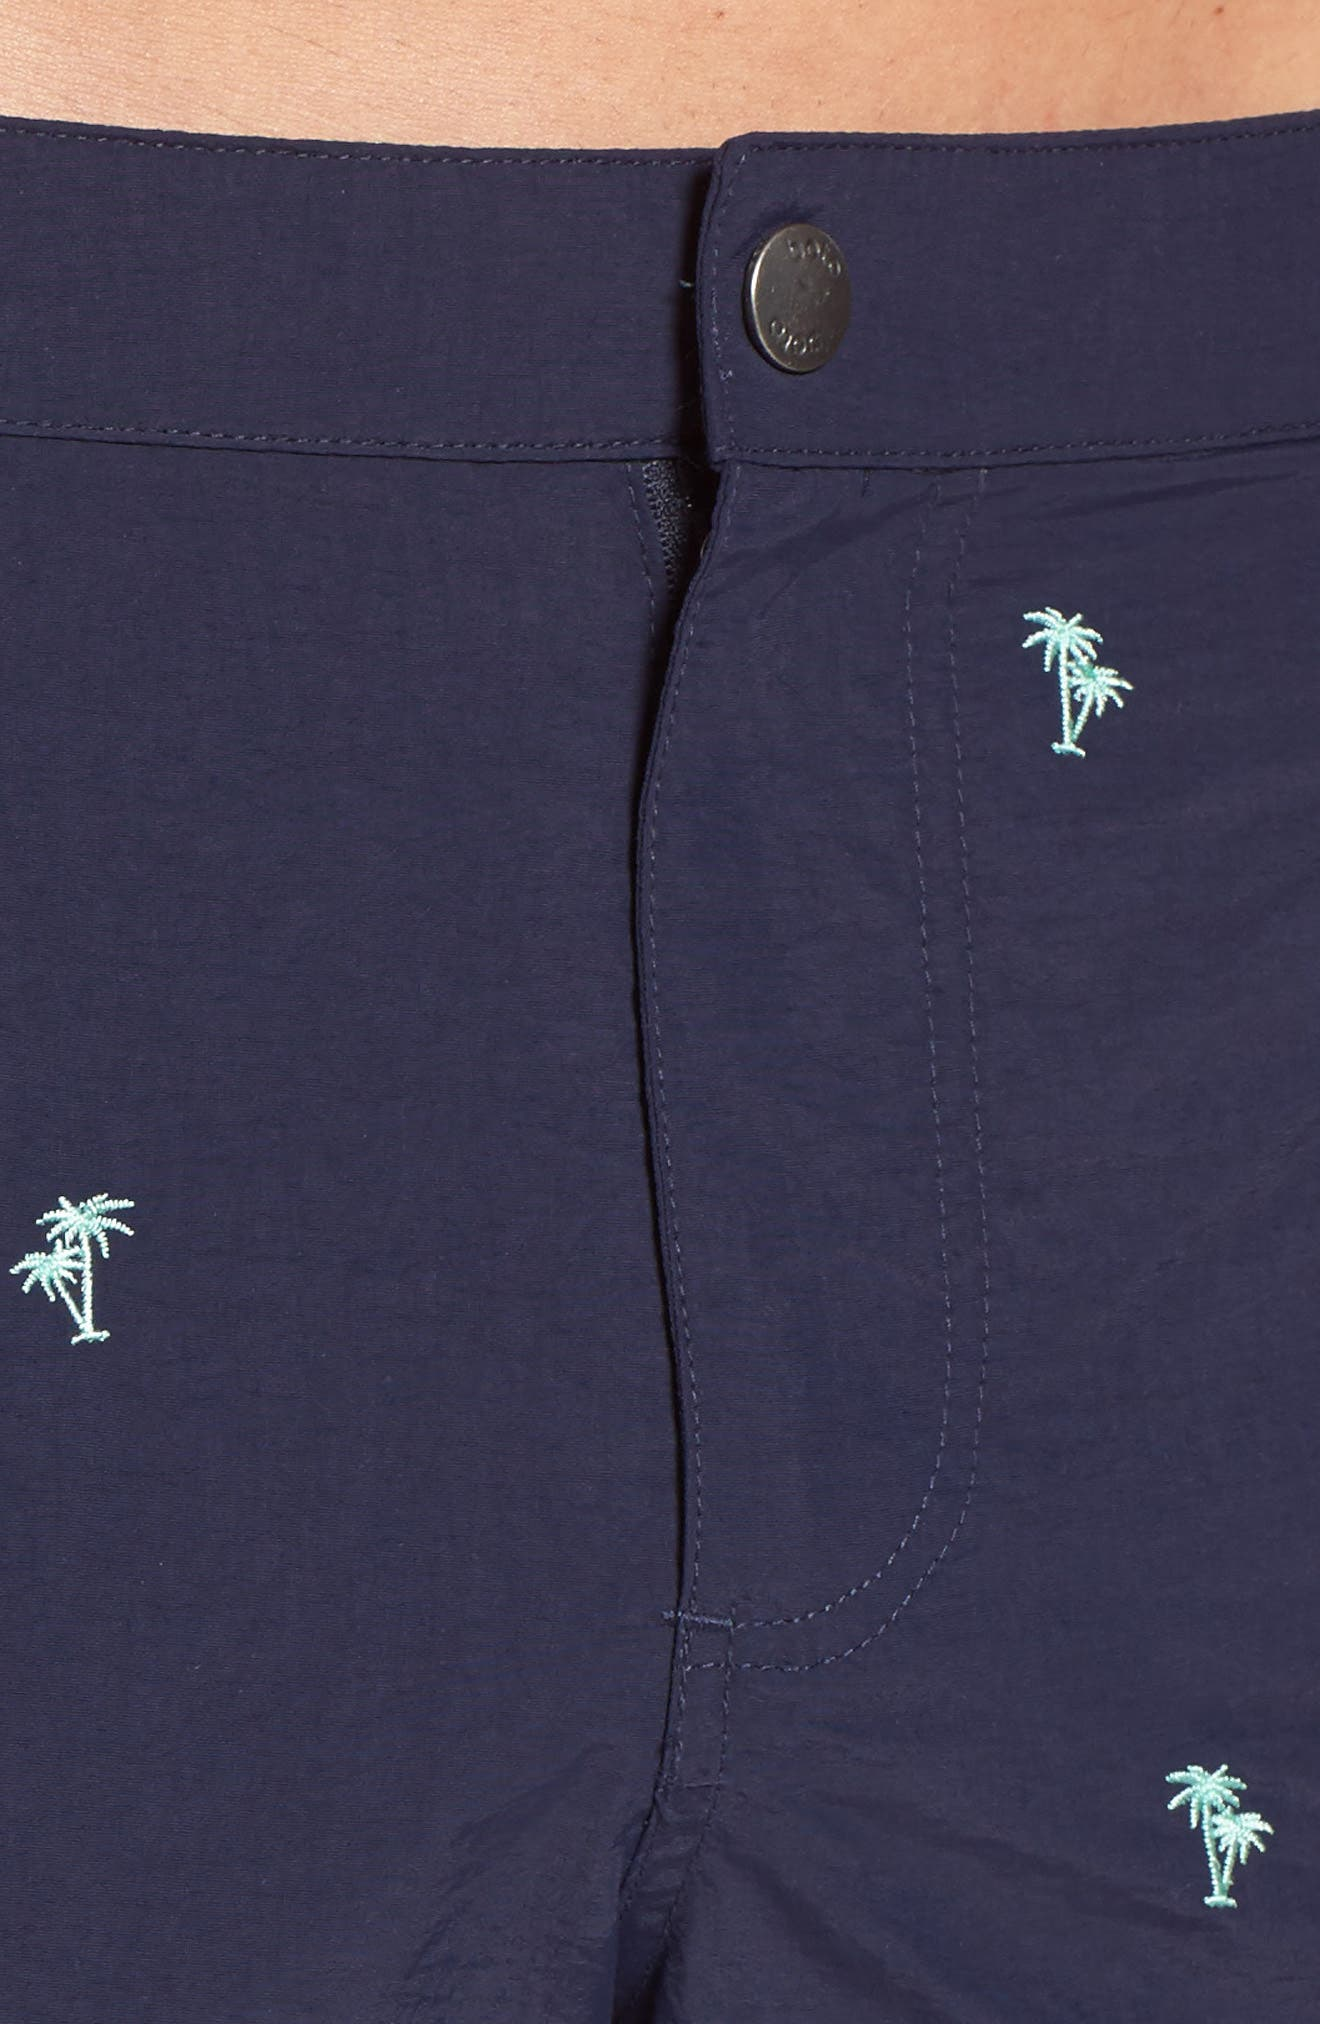 Aruba Tailored Fit Embroidered Palm Swim Trunks,                             Alternate thumbnail 4, color,                             Navy Emb Palm Trees